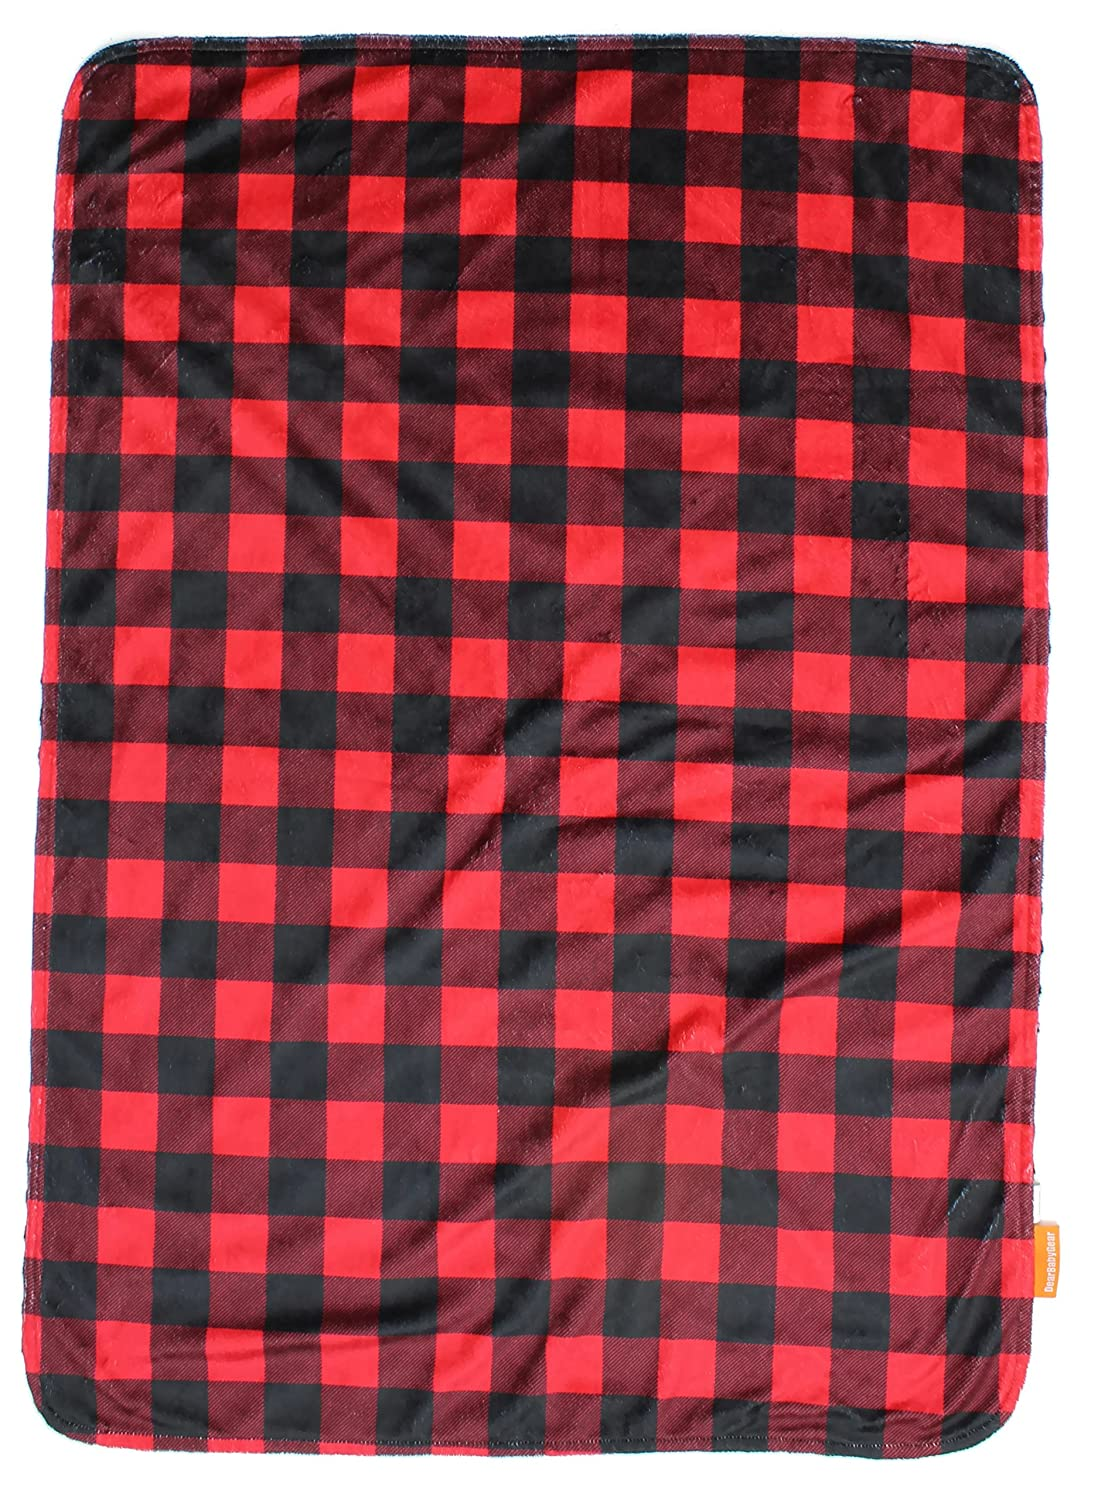 Custom Minky Print White Antlers Red and Black Buffalo Plaid Minky Dear Baby Gear Deluxe Reversible Baby Blankets